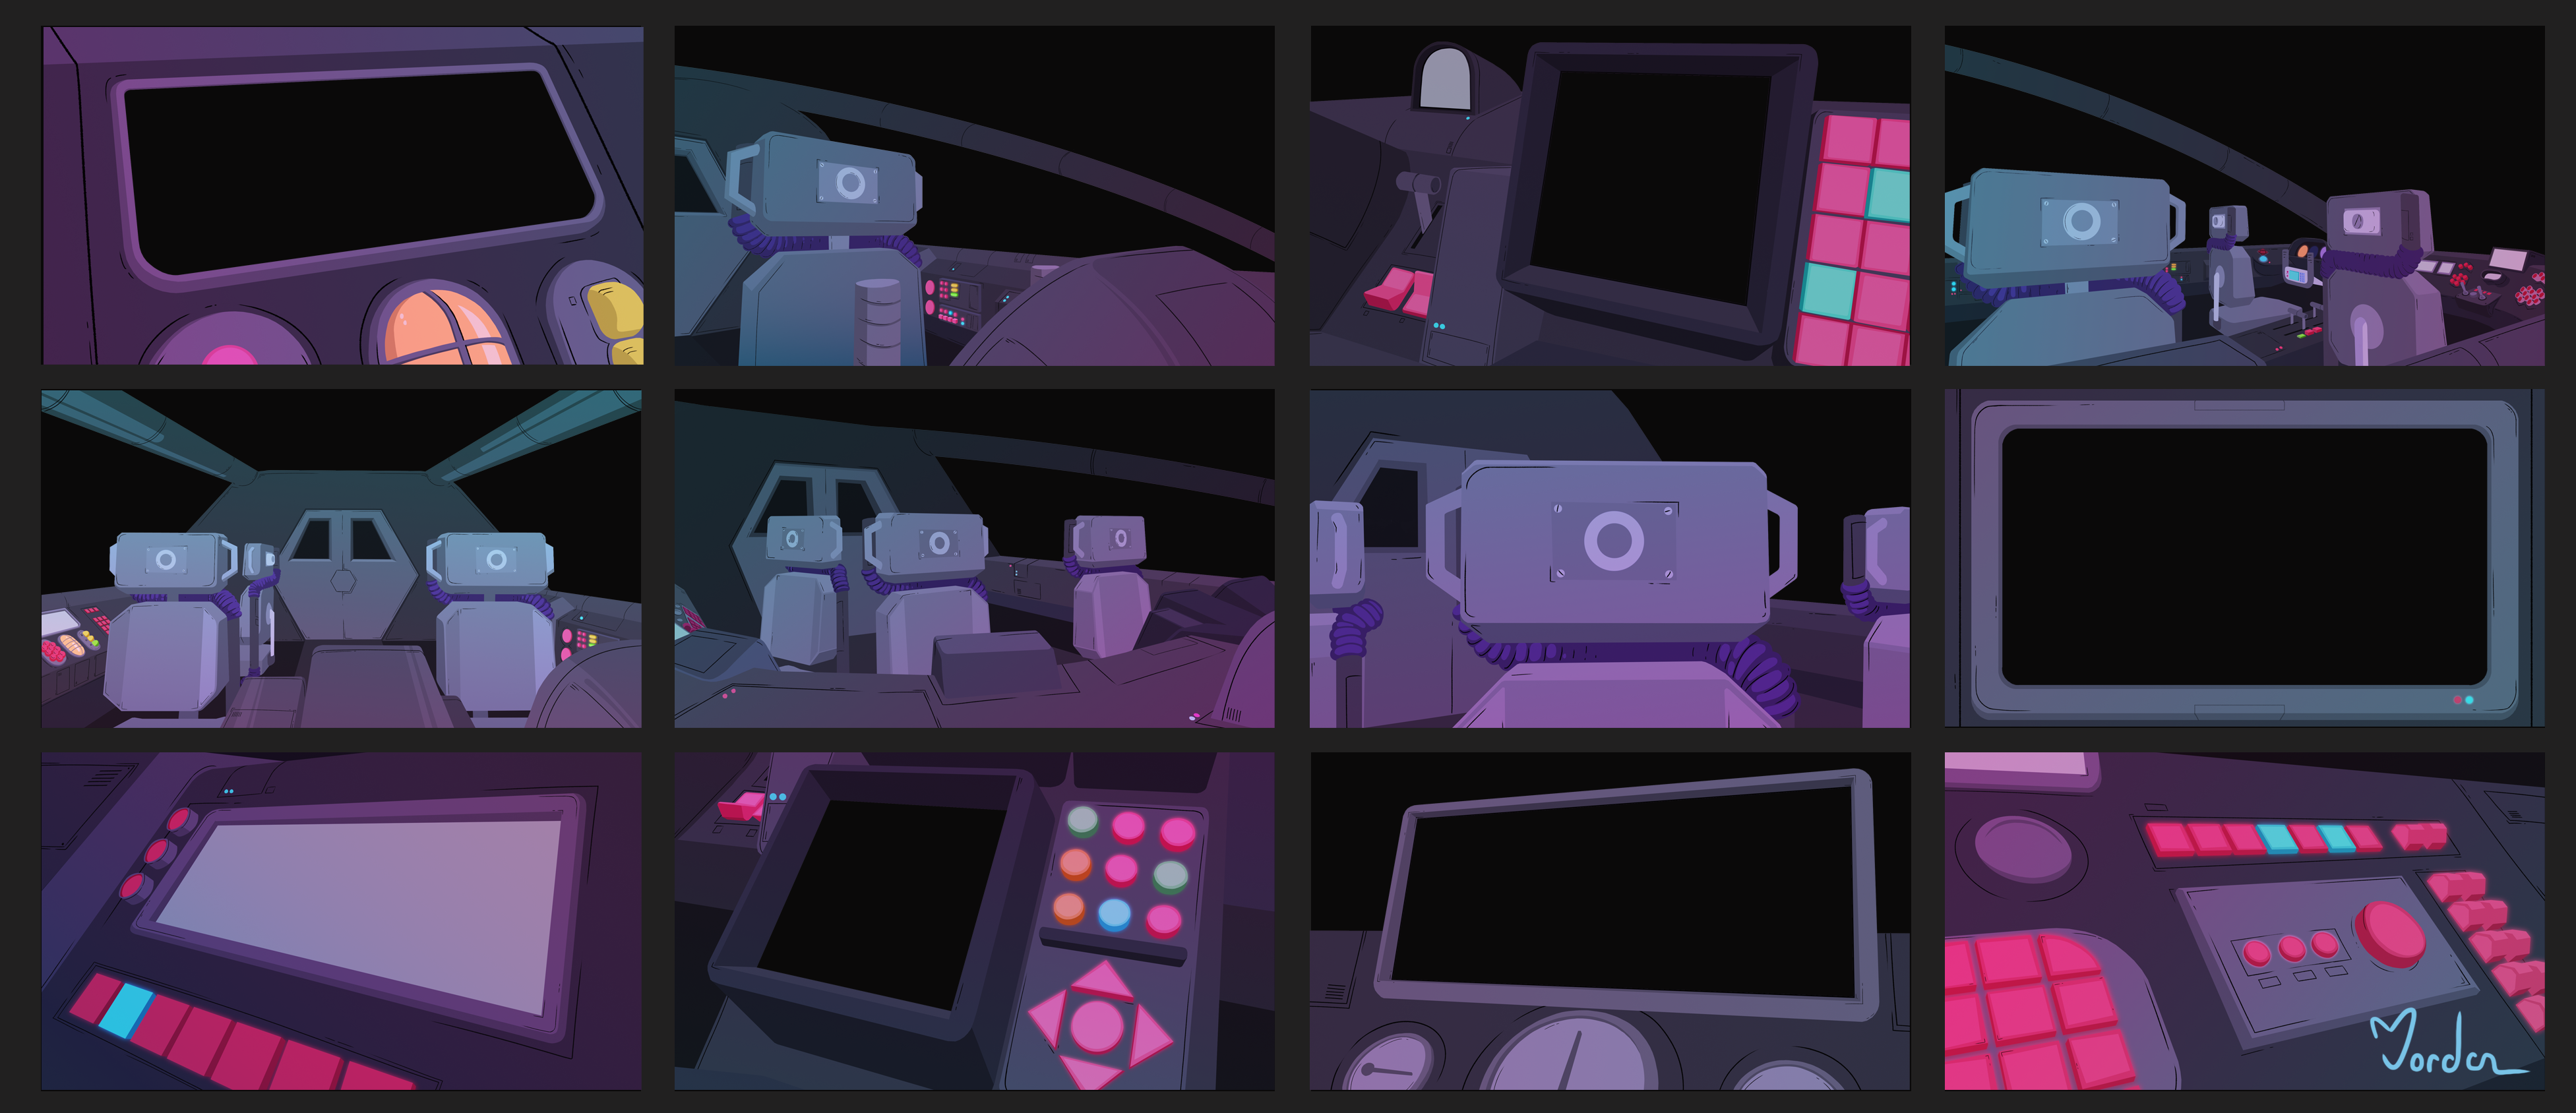 Space Ship Background Board